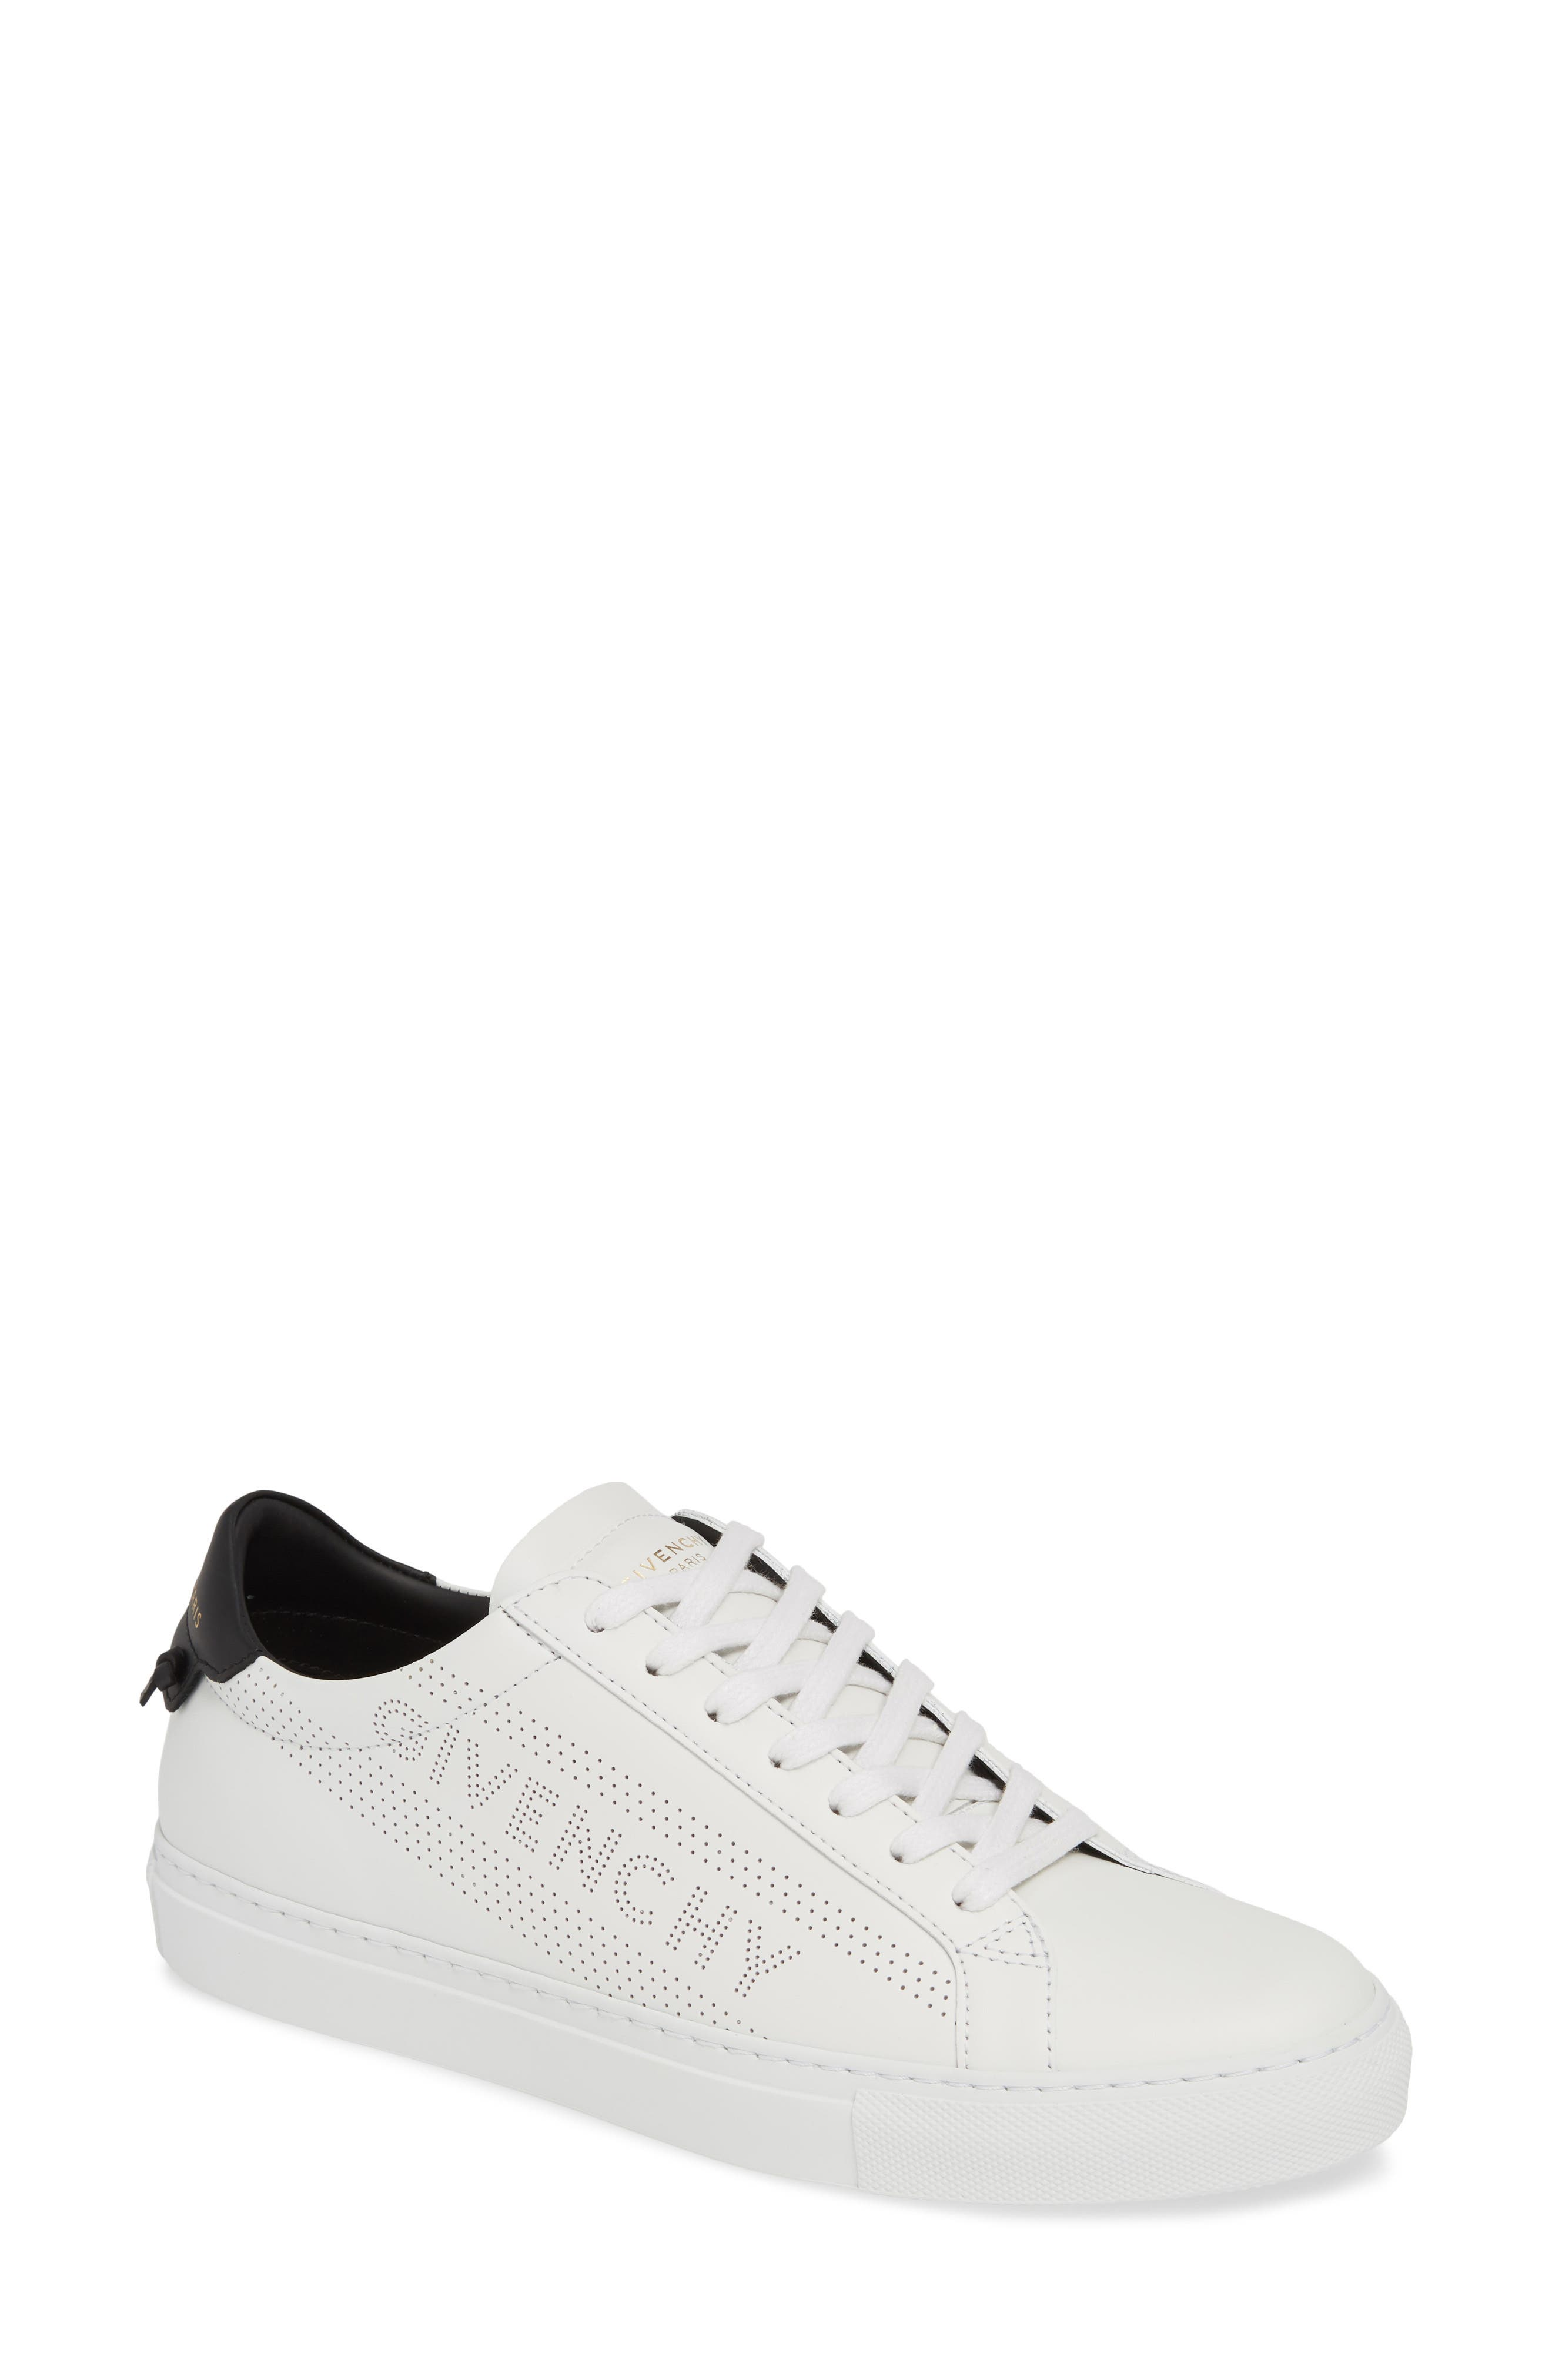 Givenchy Urban Street Perforated